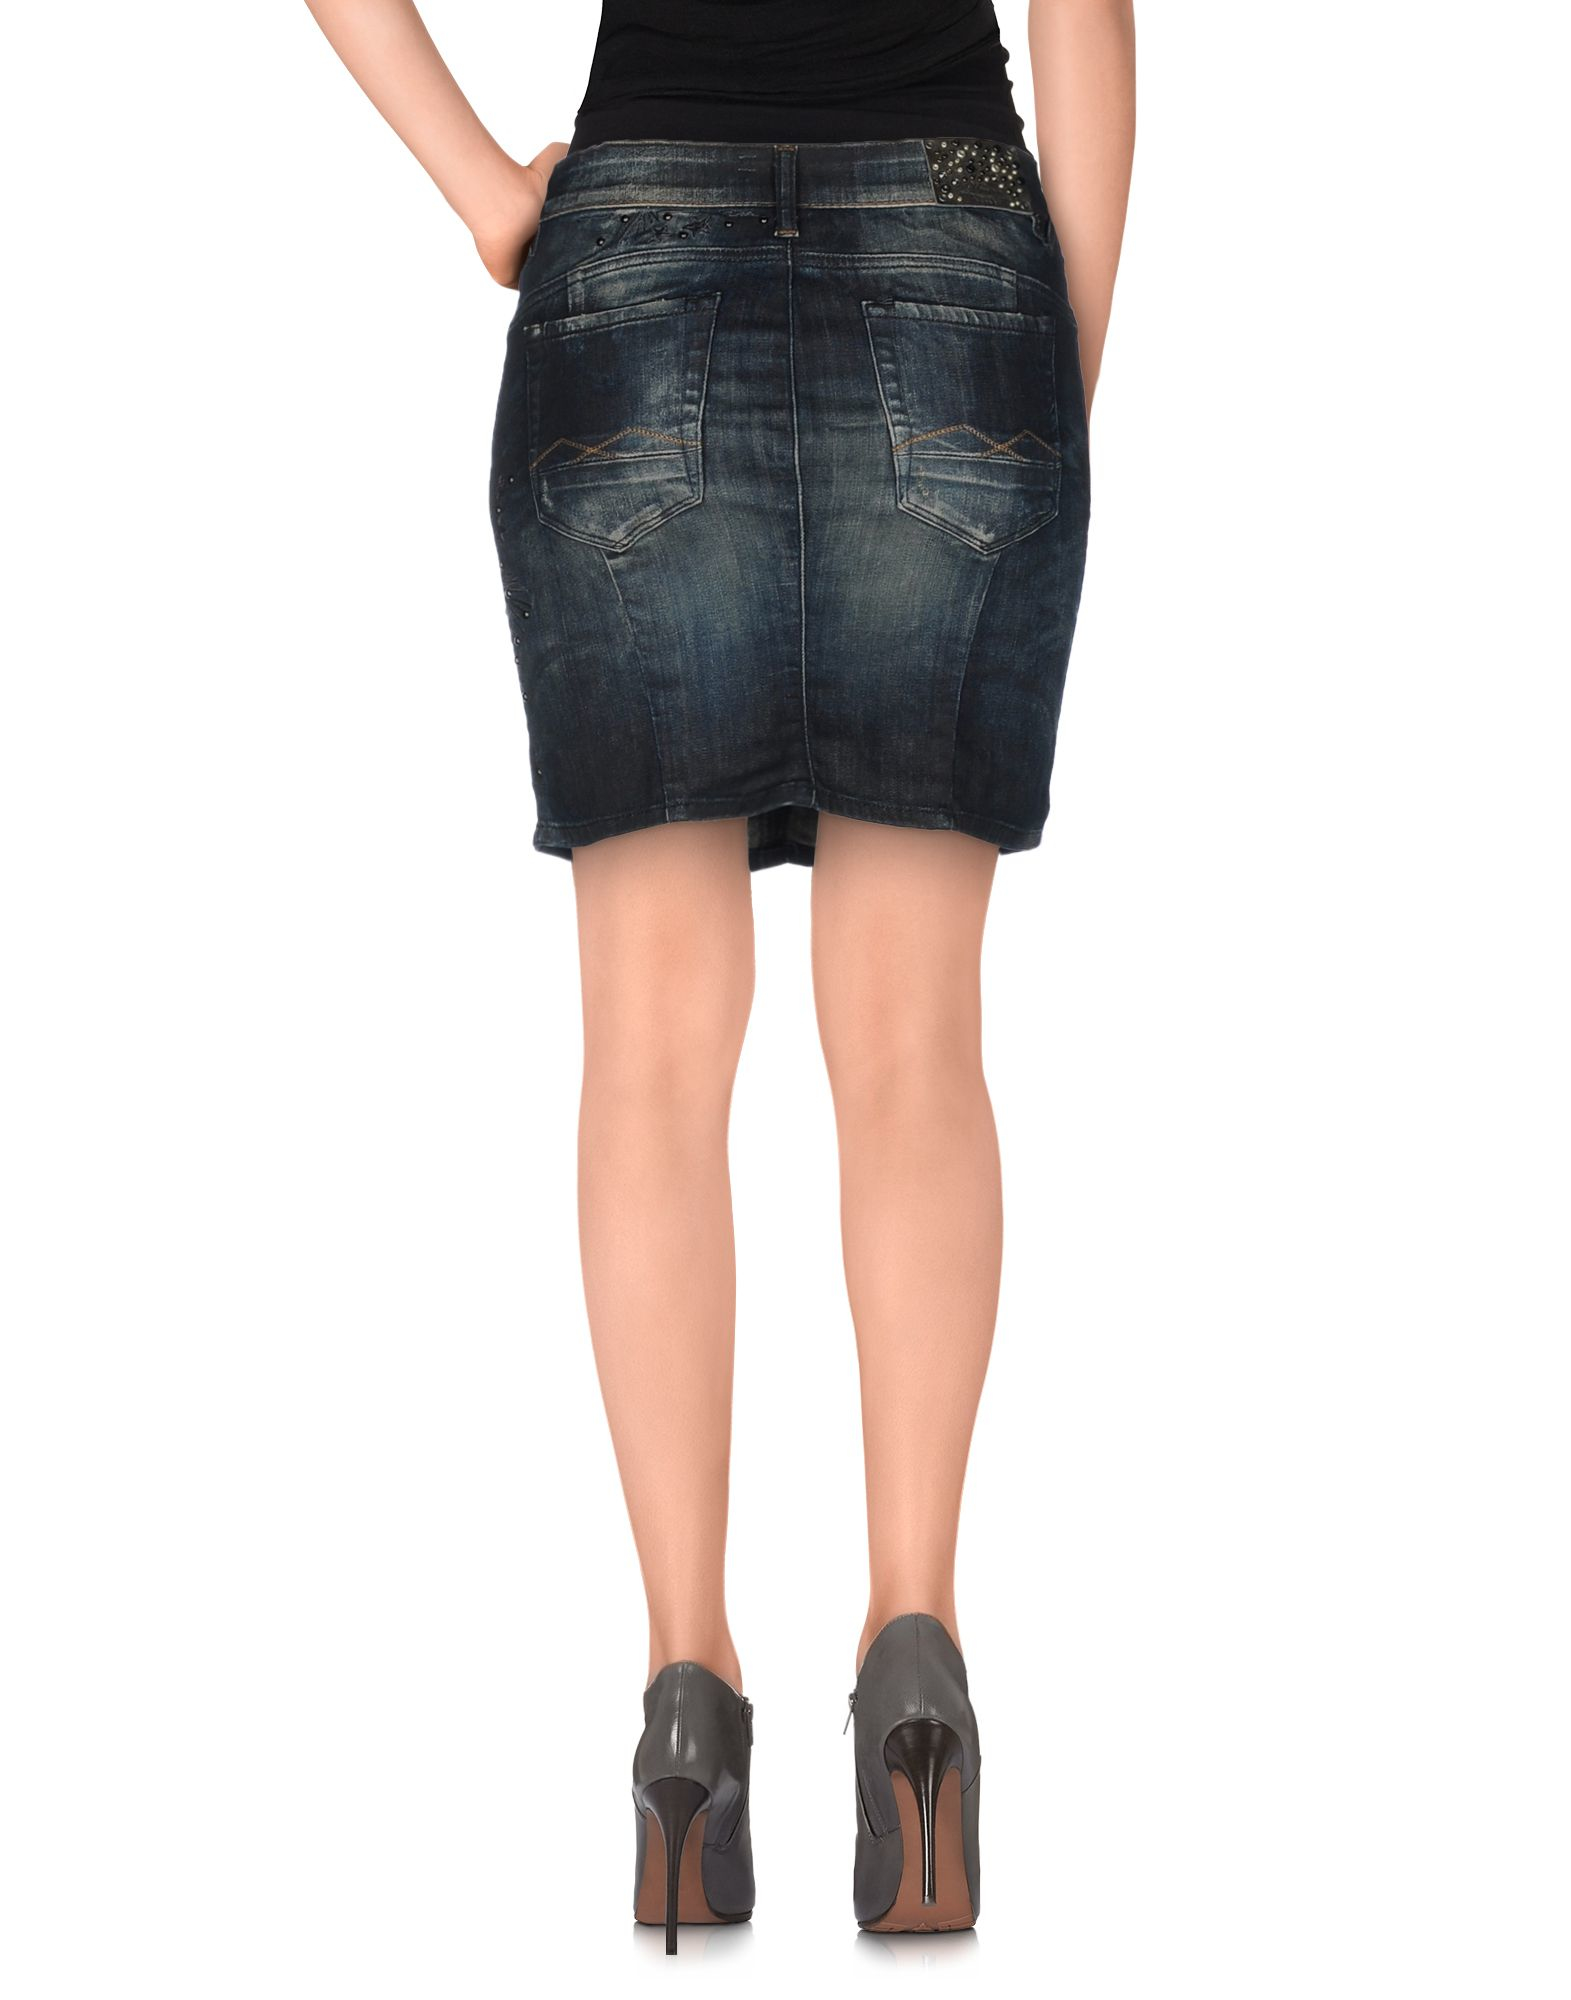 Button Front Denim Skirt From funky and fresh micros to classic A-line silhouettes, discover stylish denim skirts for effortless edge to all your outfits. Find chic designs from your favorite brands to create the perfect casual looks.